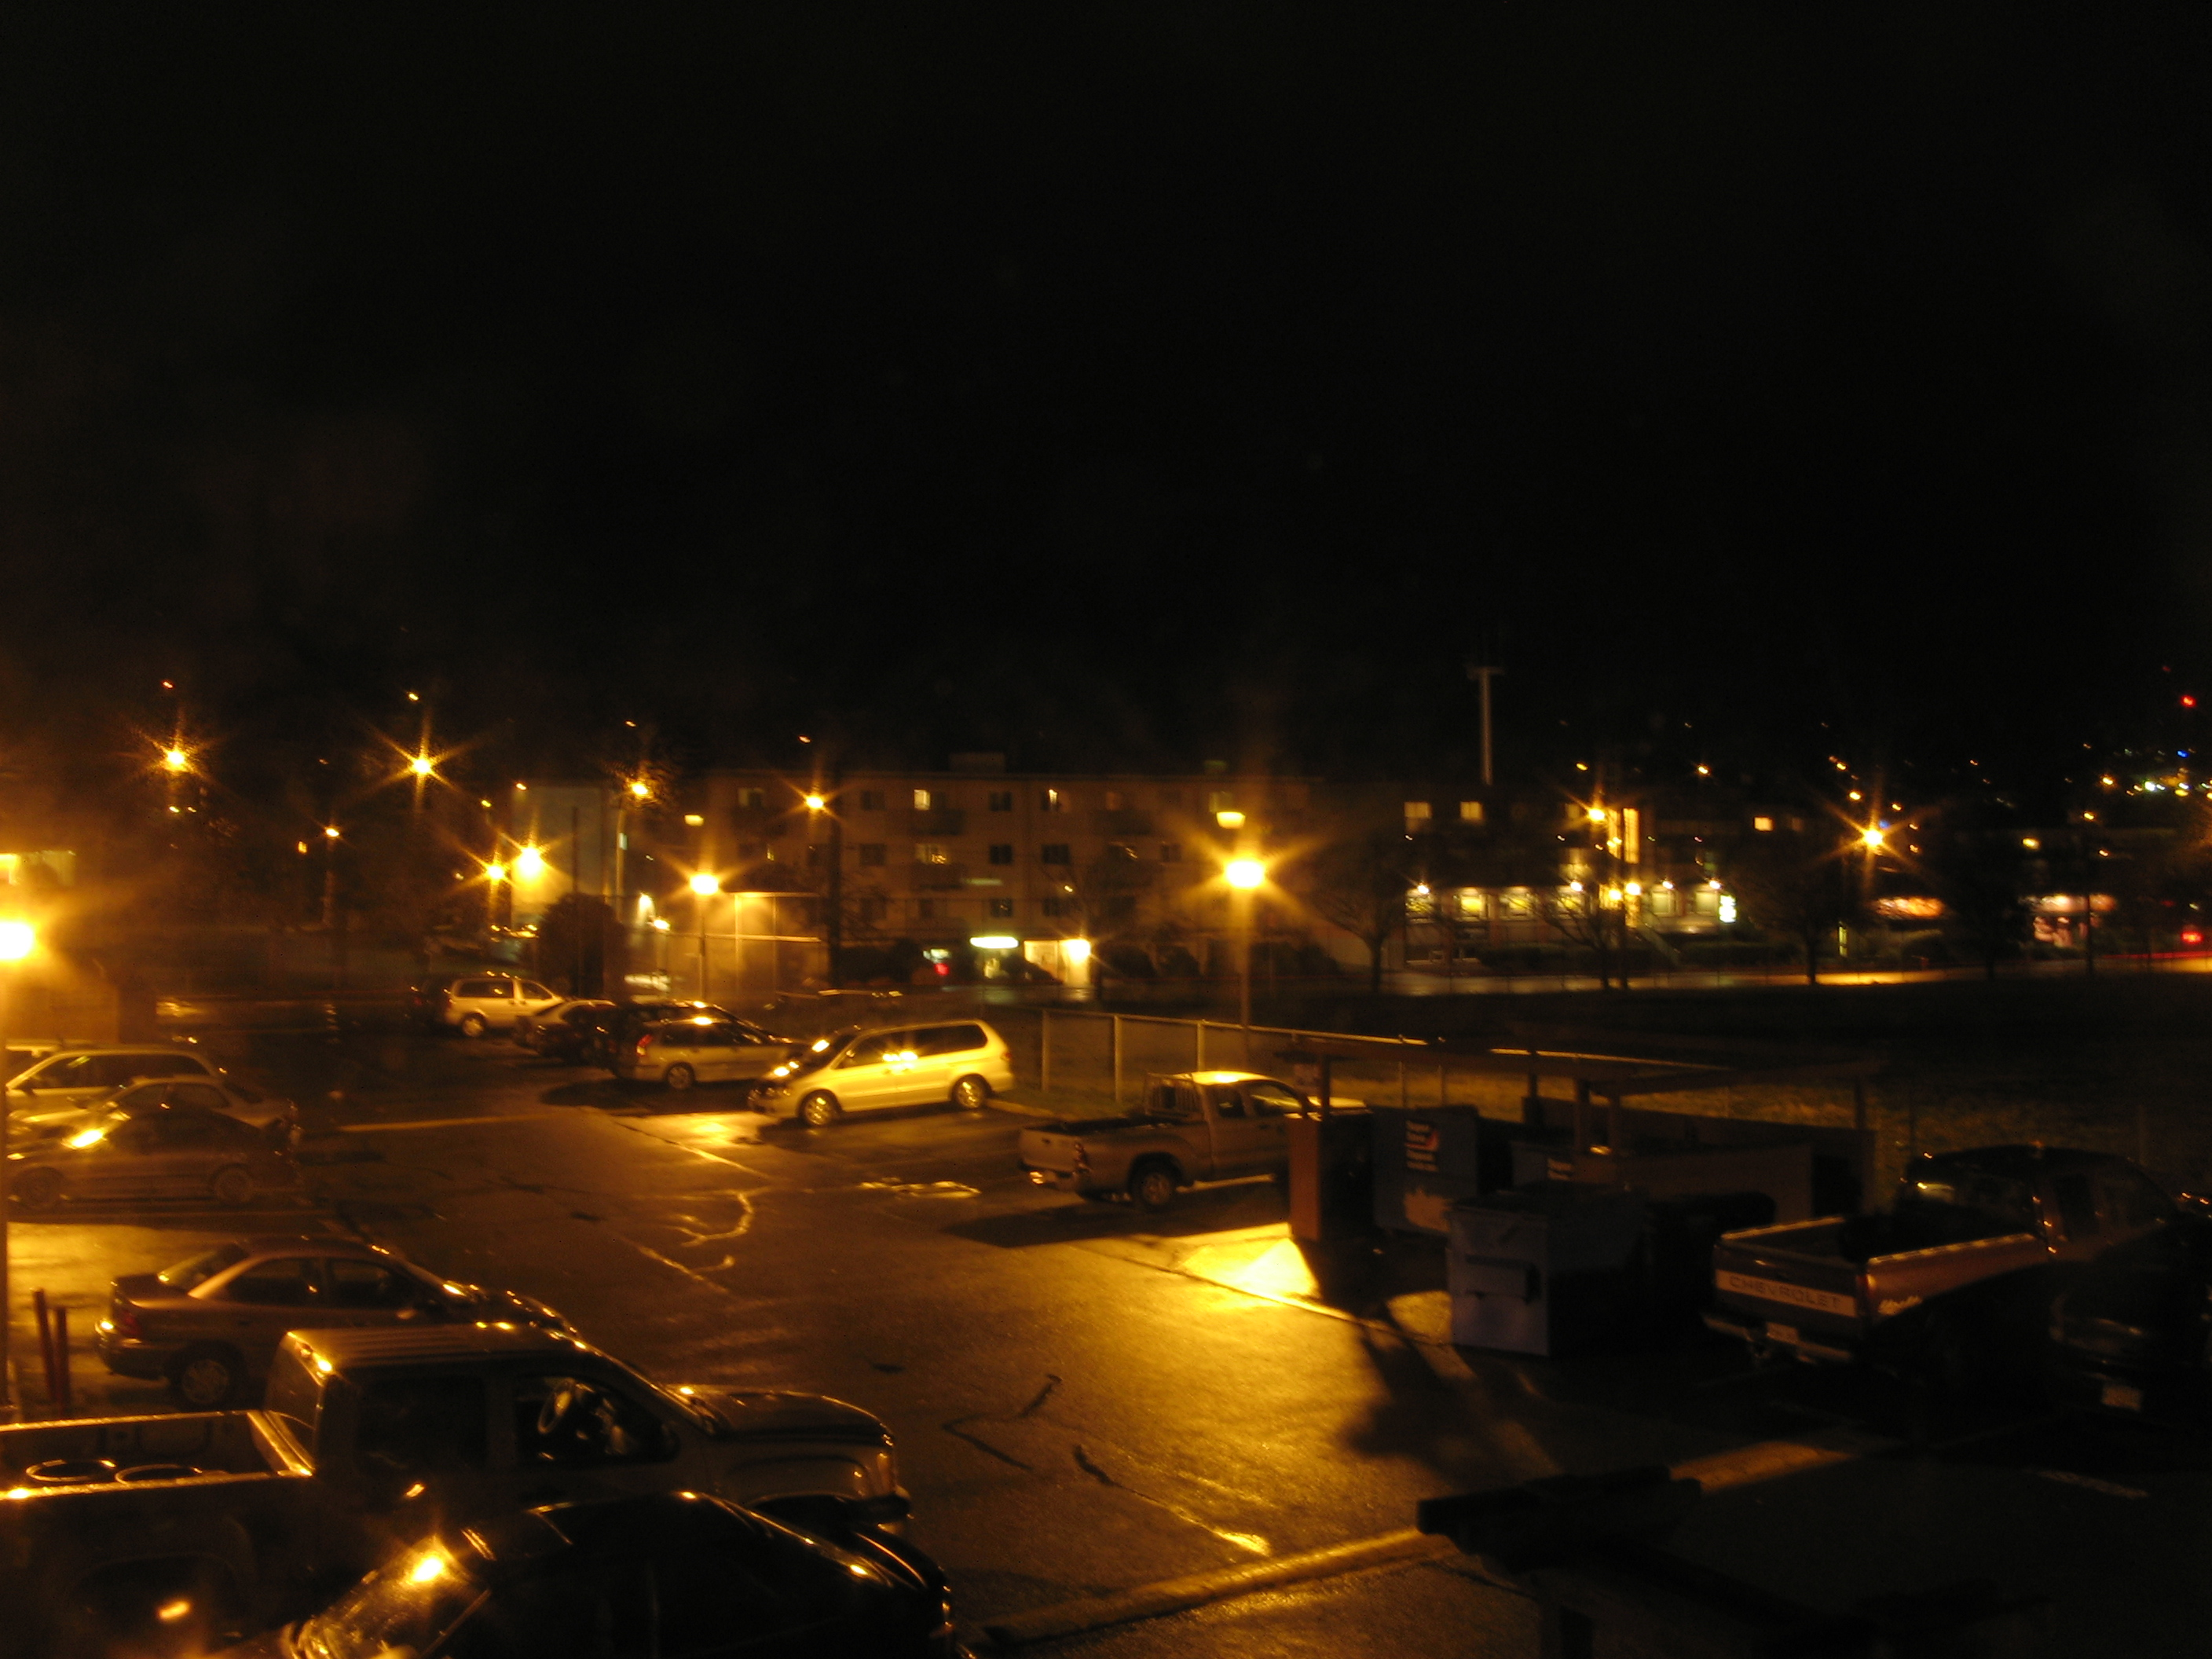 Free Picture Urban City Housing Parking Lot Cars Night